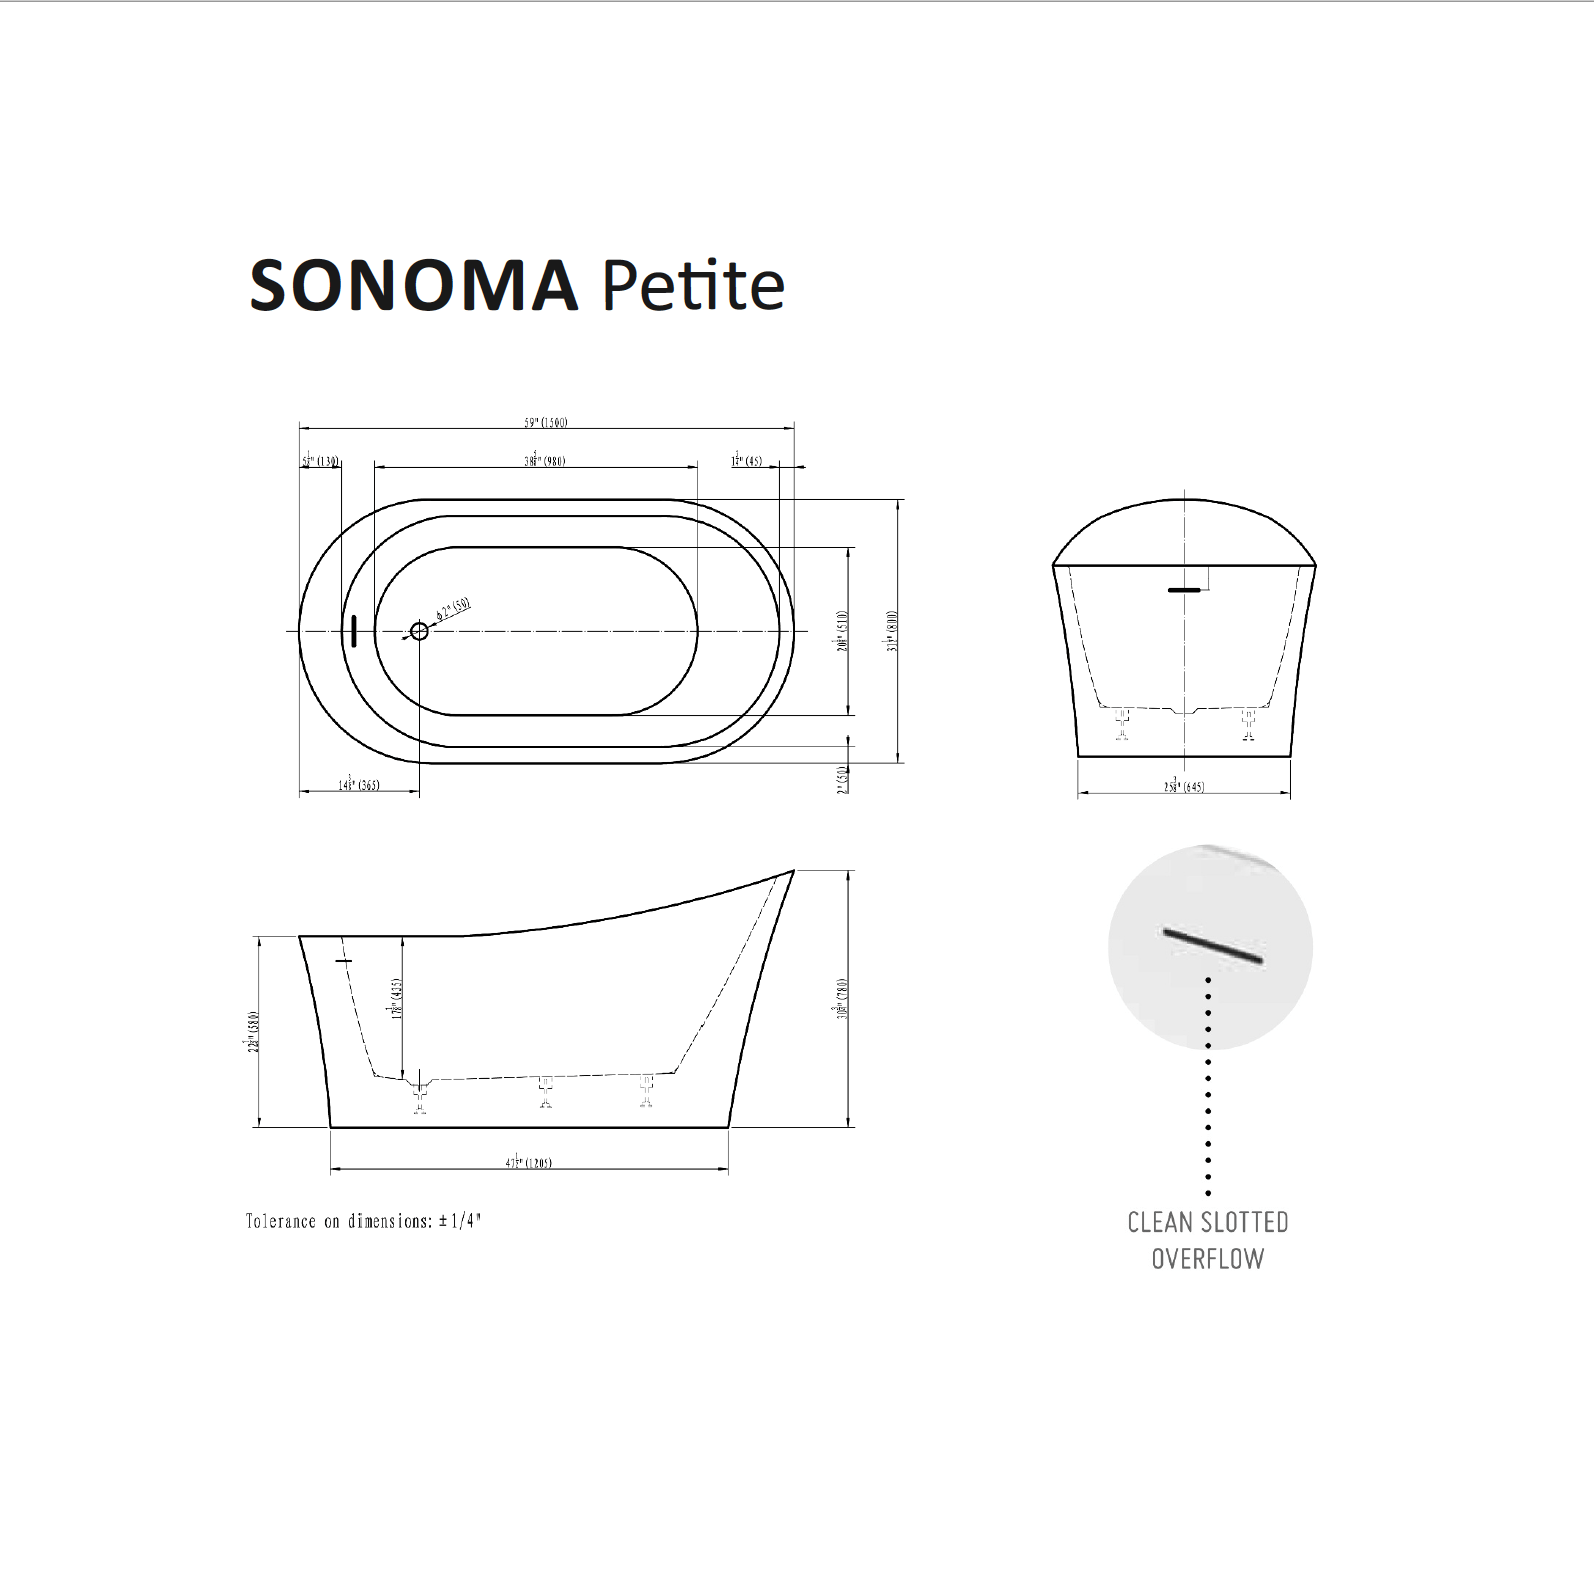 Sonoma Petite Tub Specifications